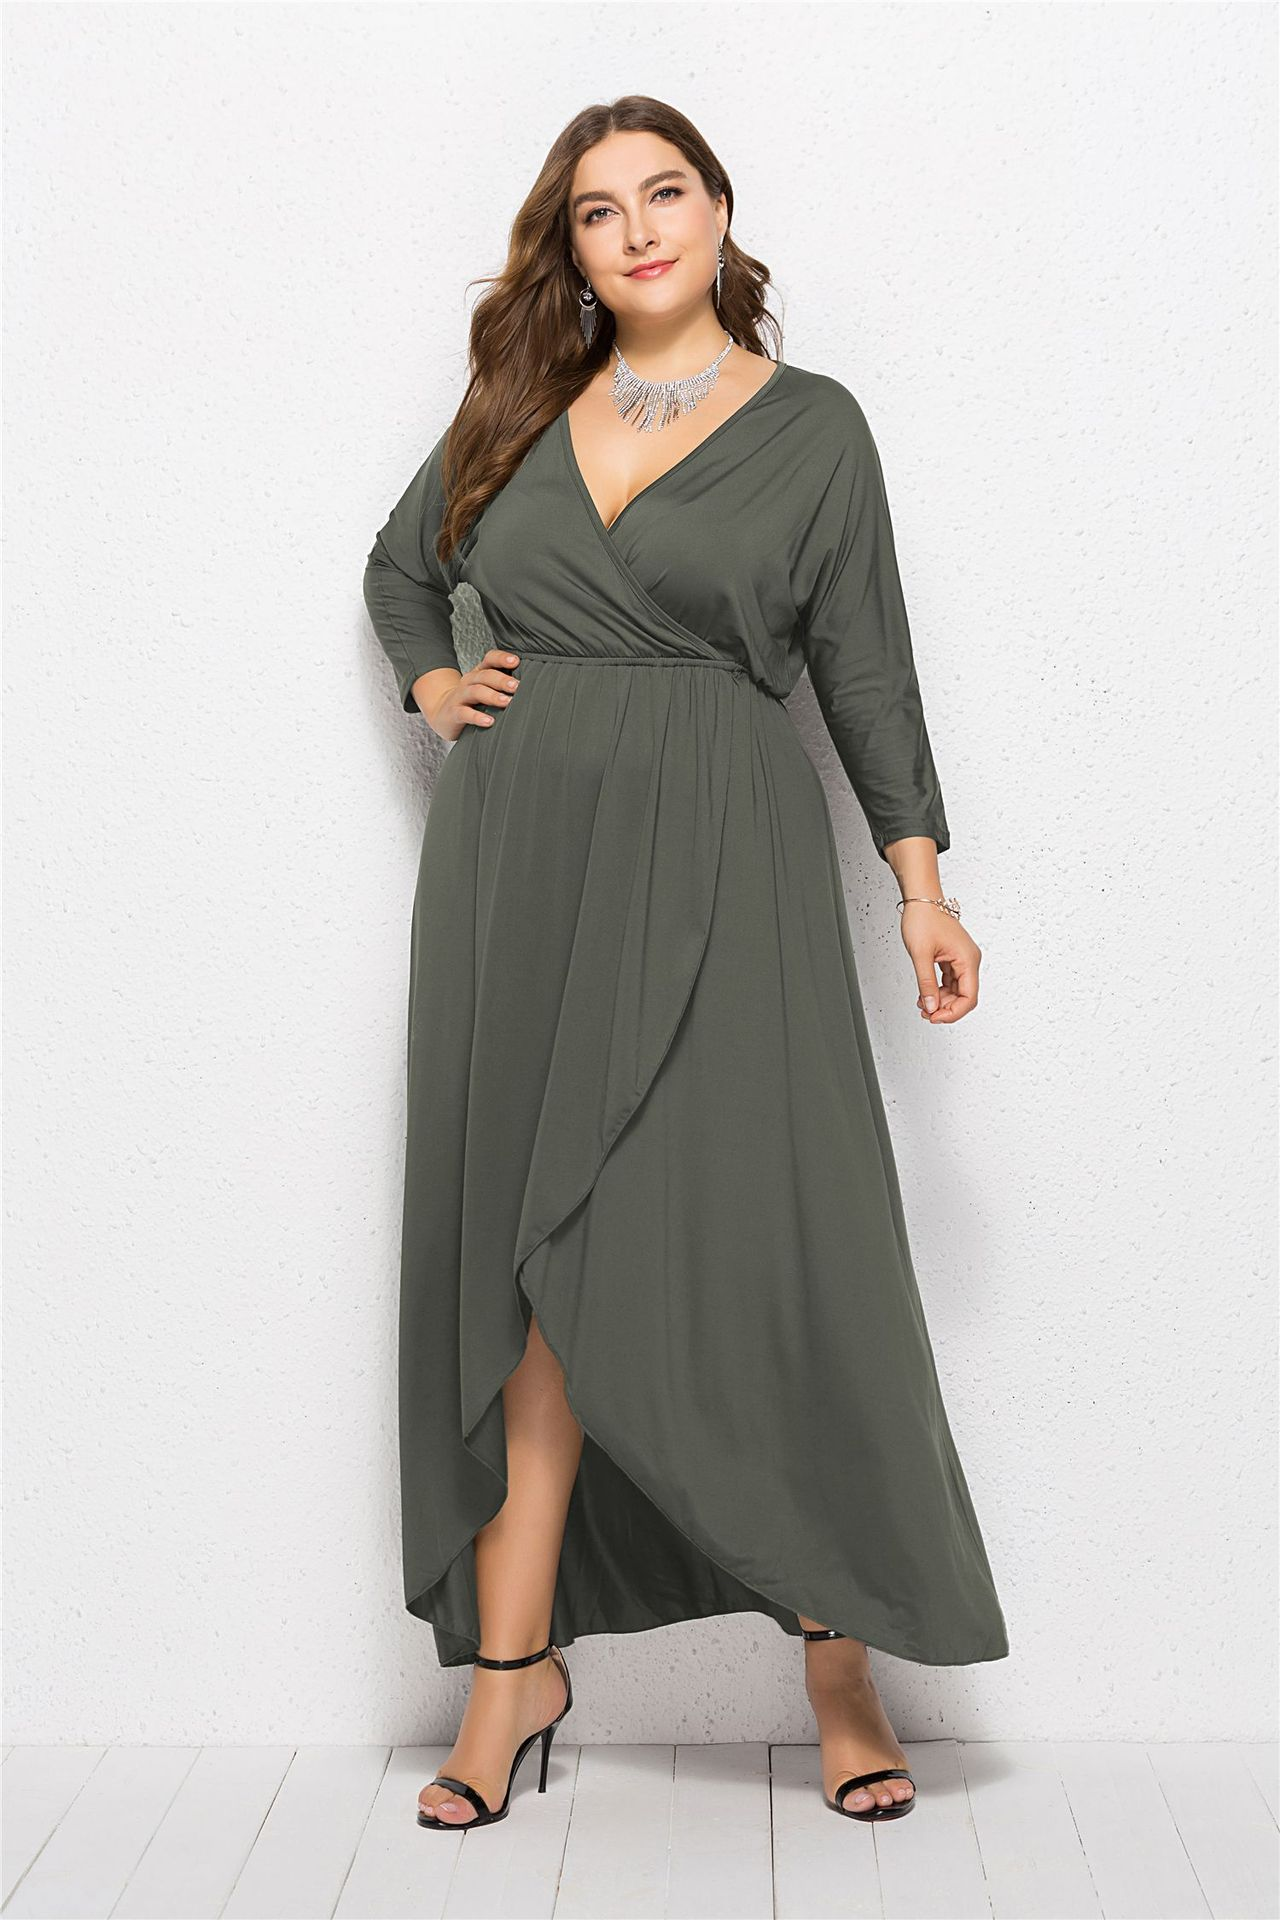 6928fbf1d9b Women Asymmetrical Maxi Dress V-Neck Long Sleeve Plus Size Slim Long Formal  Evening Party